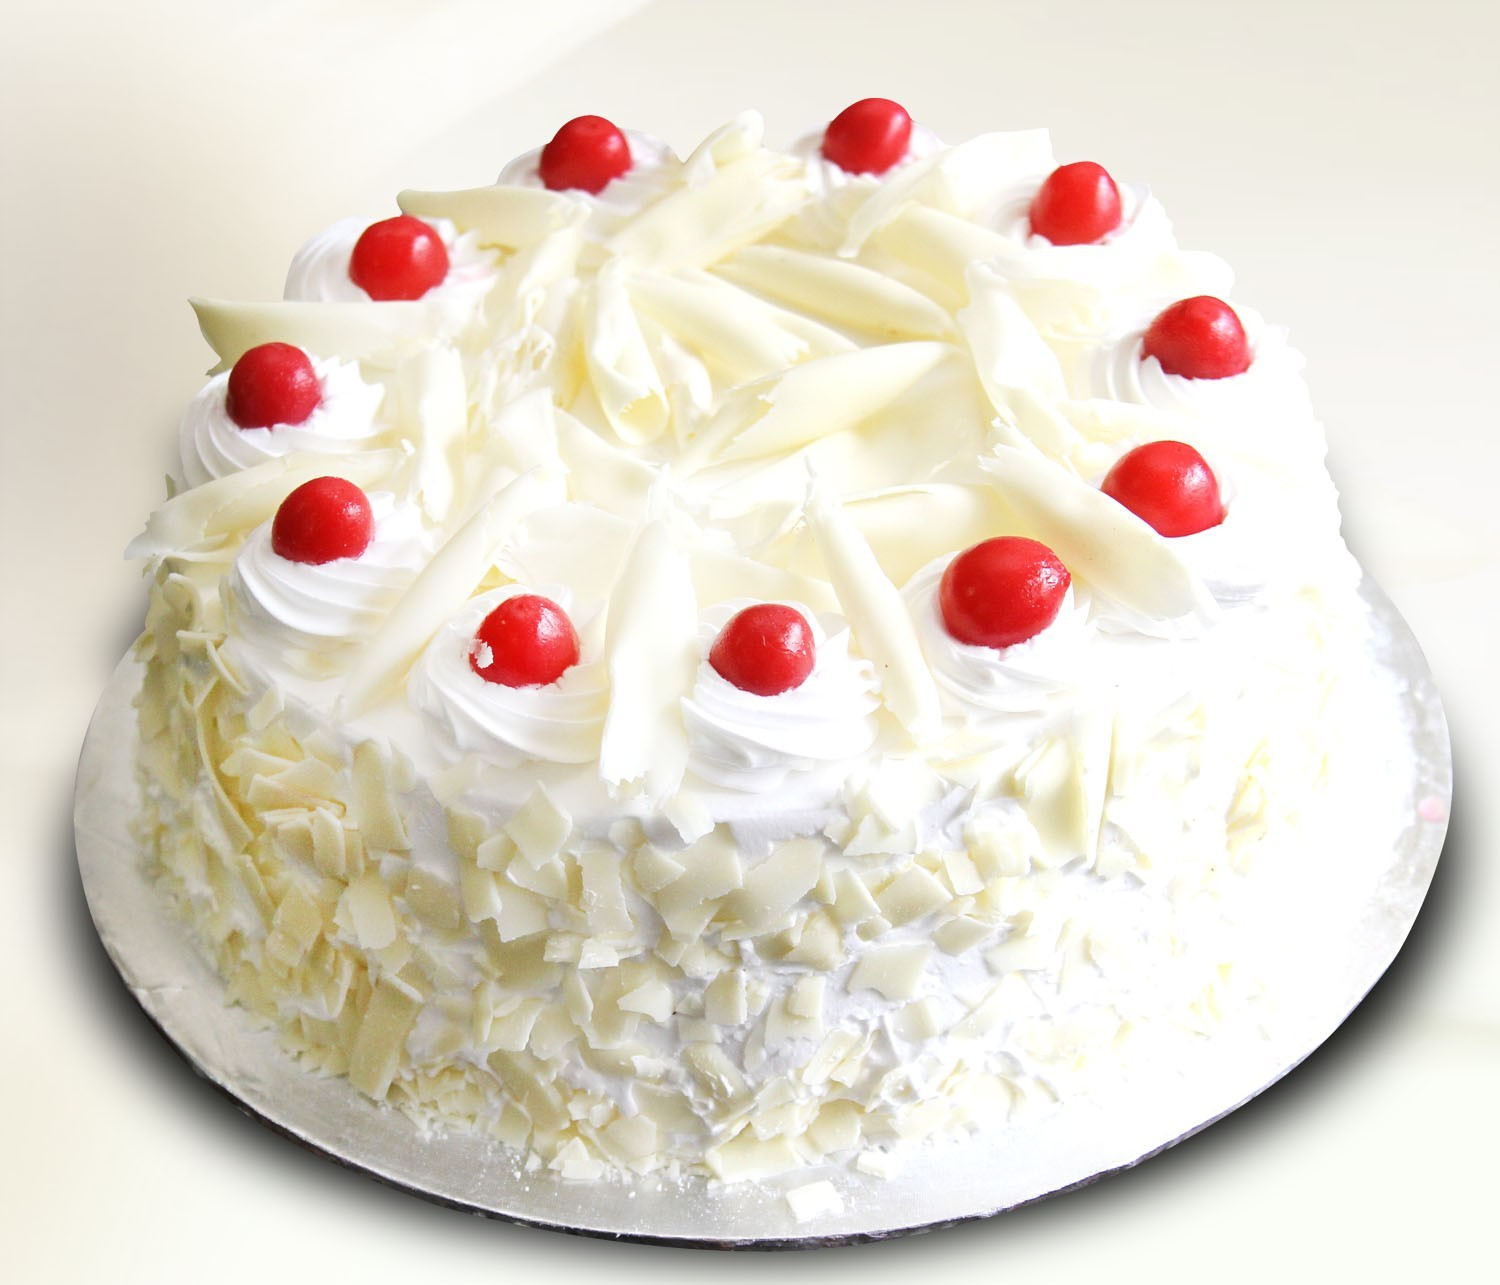 Send Cakes White Forest Cake 2lbs Serena Hotel Gift To Pakistan